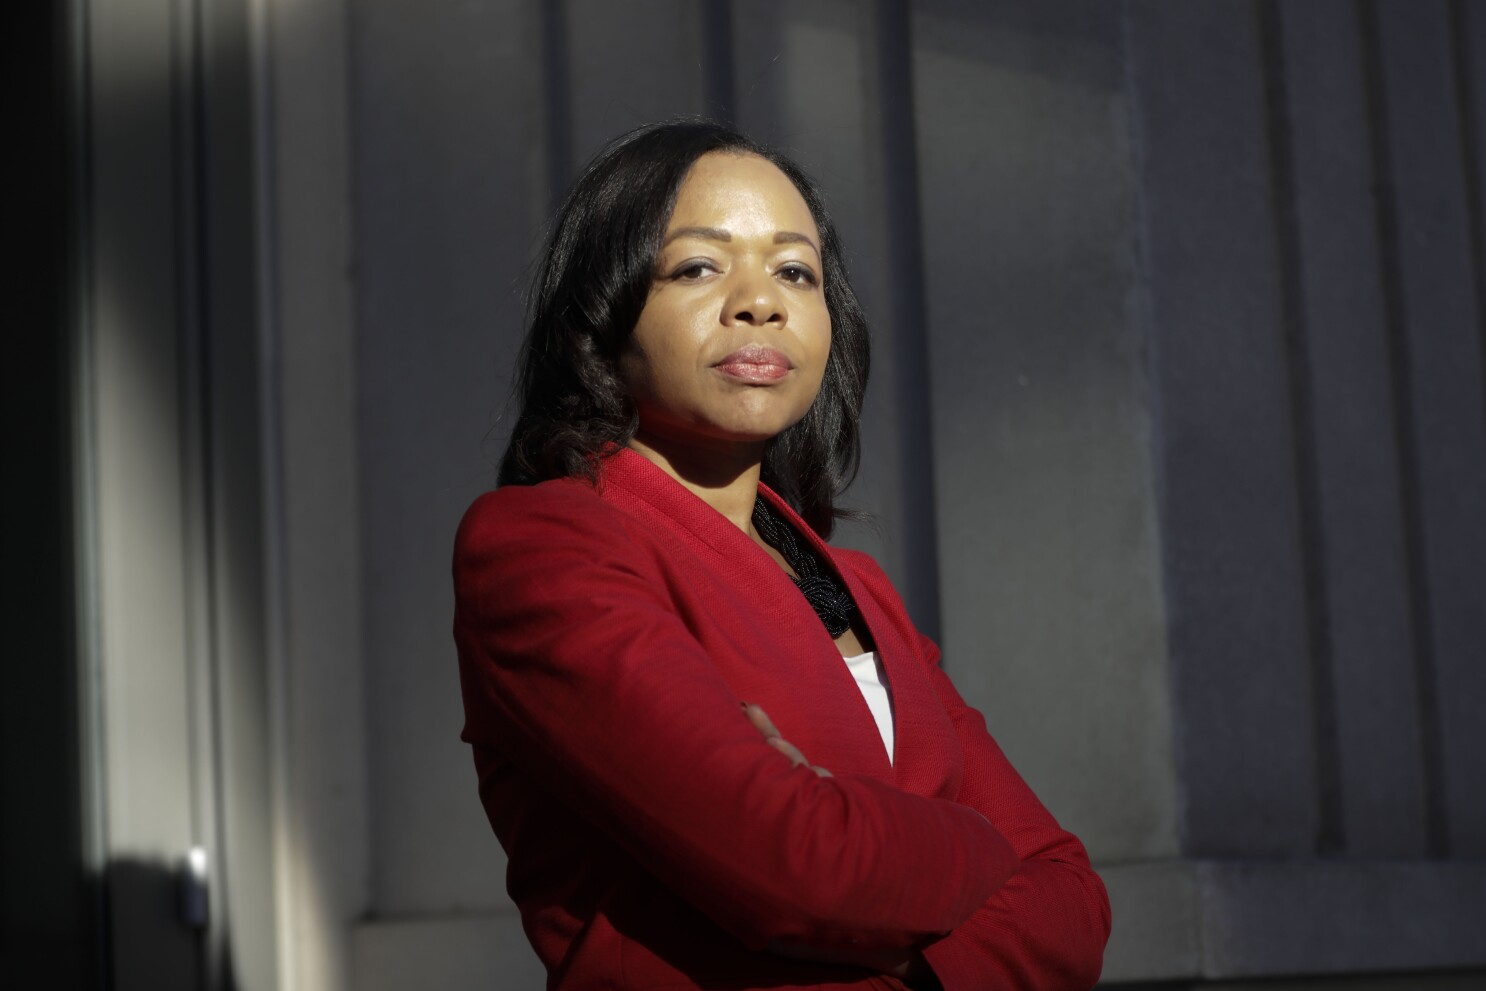 Senate Confirms Kristen Clarke as First Black Woman to Lead Justice Department's Civil Rights Division